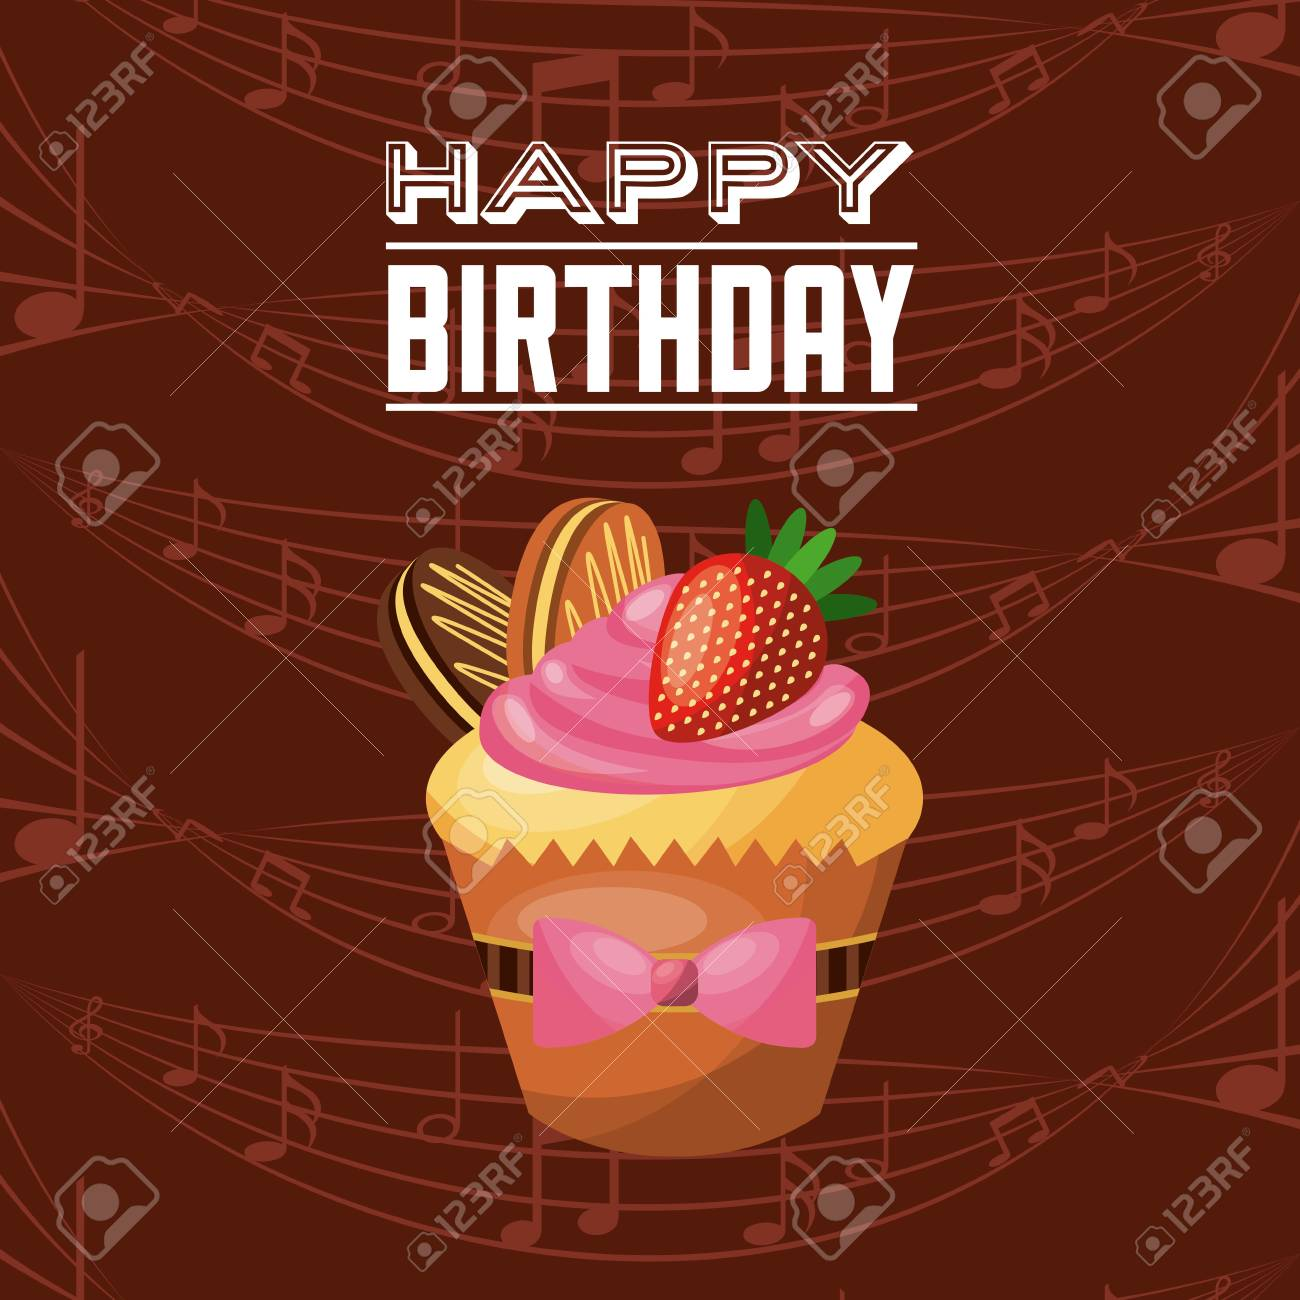 Happy birthday hintergrund musik